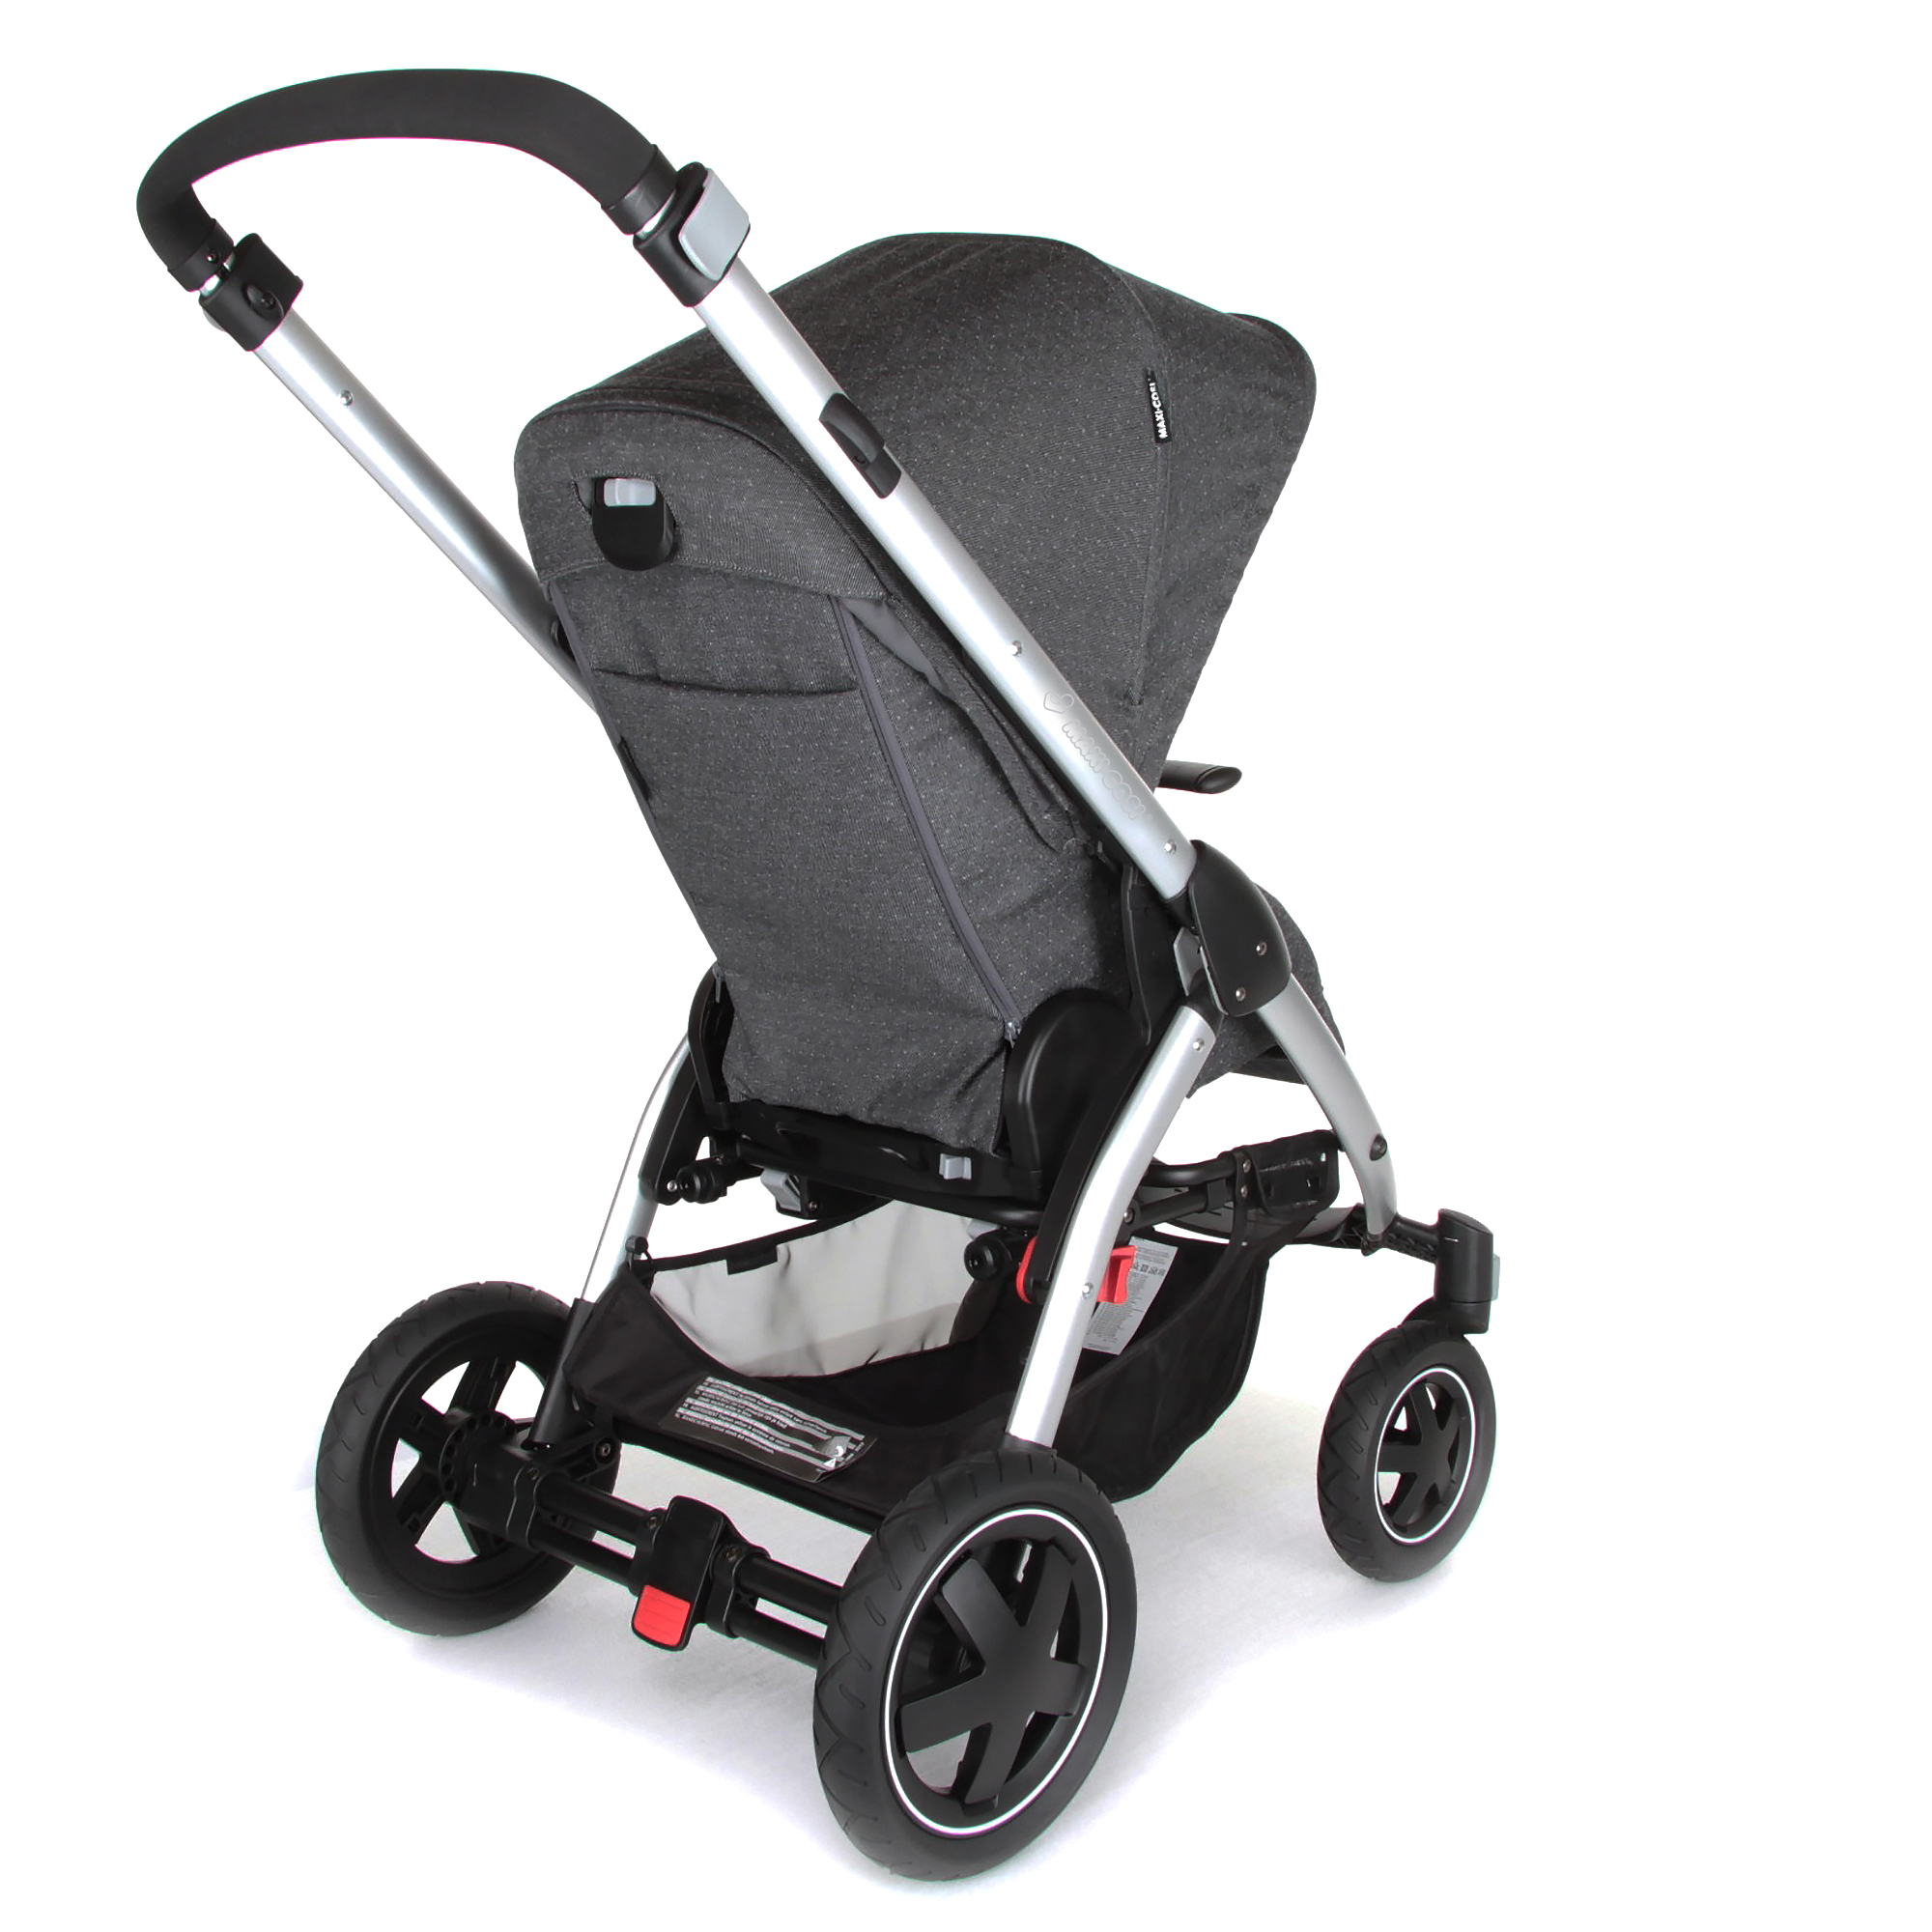 maxi cosi stroller stella 2017 sparkling grey buy at kidsroom strollers. Black Bedroom Furniture Sets. Home Design Ideas